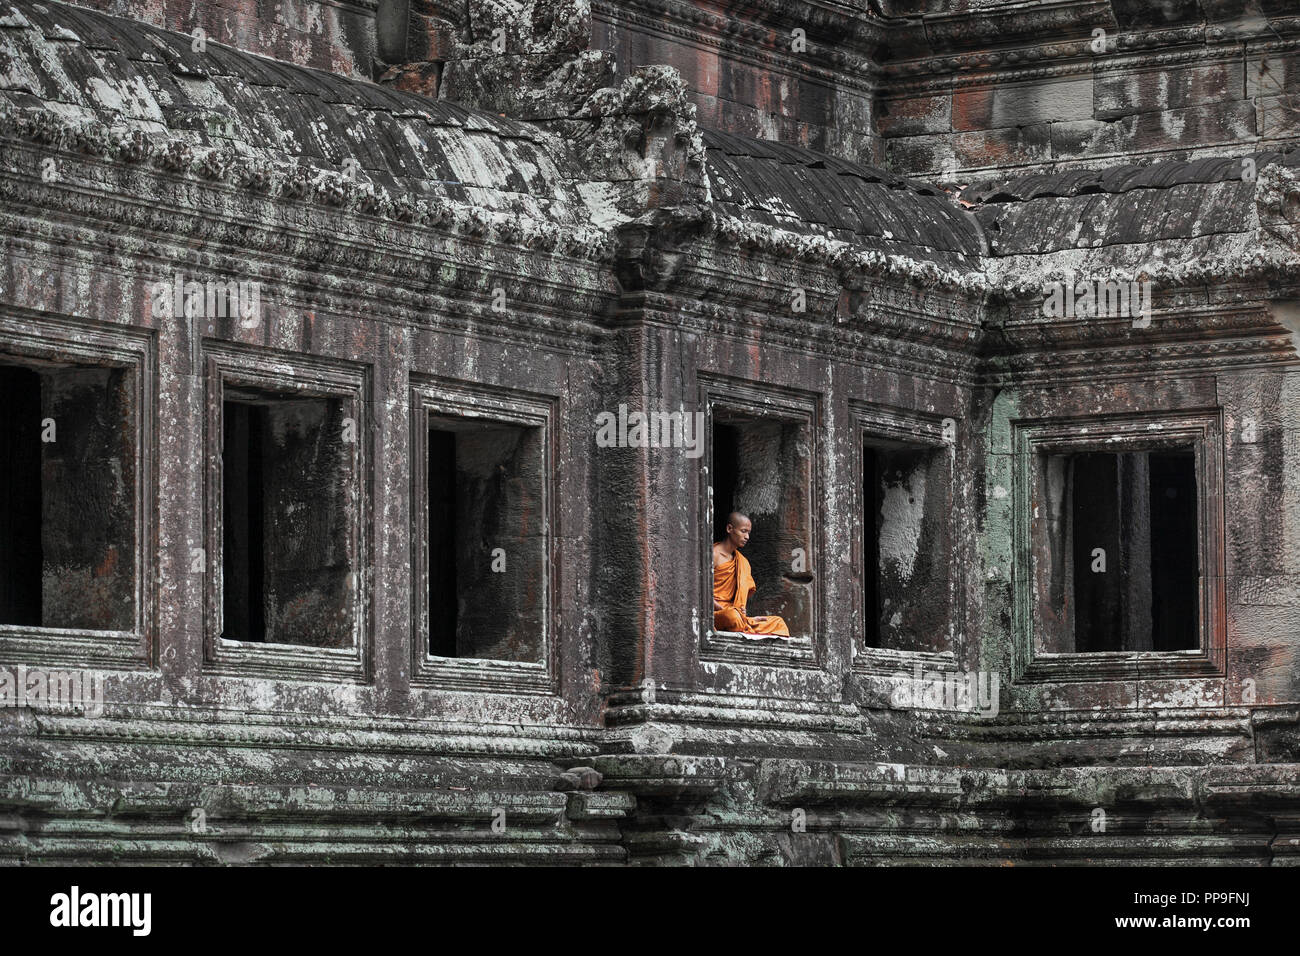 Buddhist monk meditating in window of temple building at Angkor Wat complex in Siem Reap, Cambodia Stock Photo